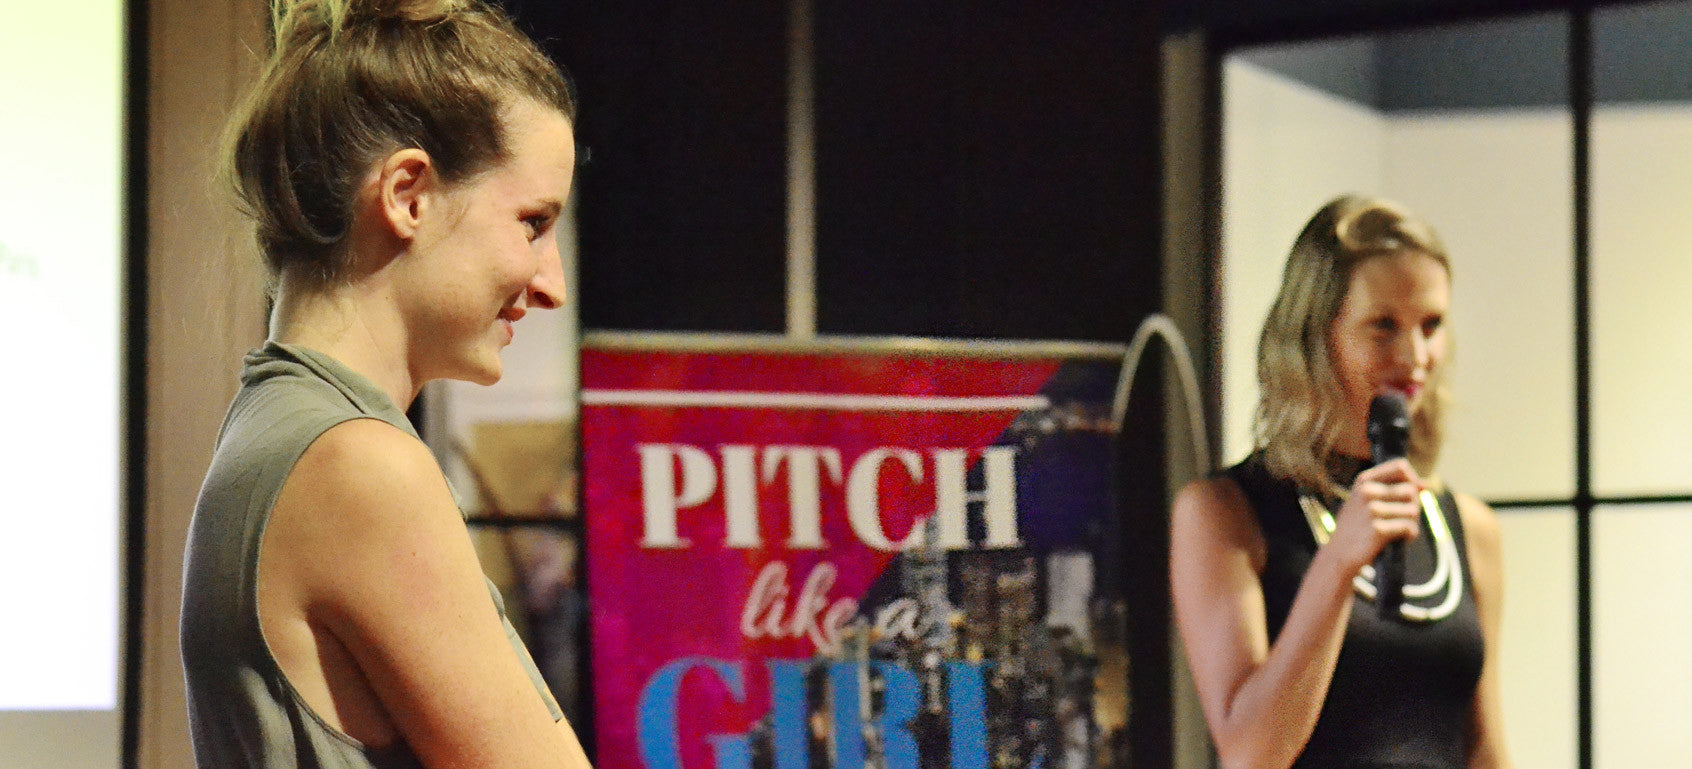 Pitch Like A Girl (Rise), our pitch for investors at Metta